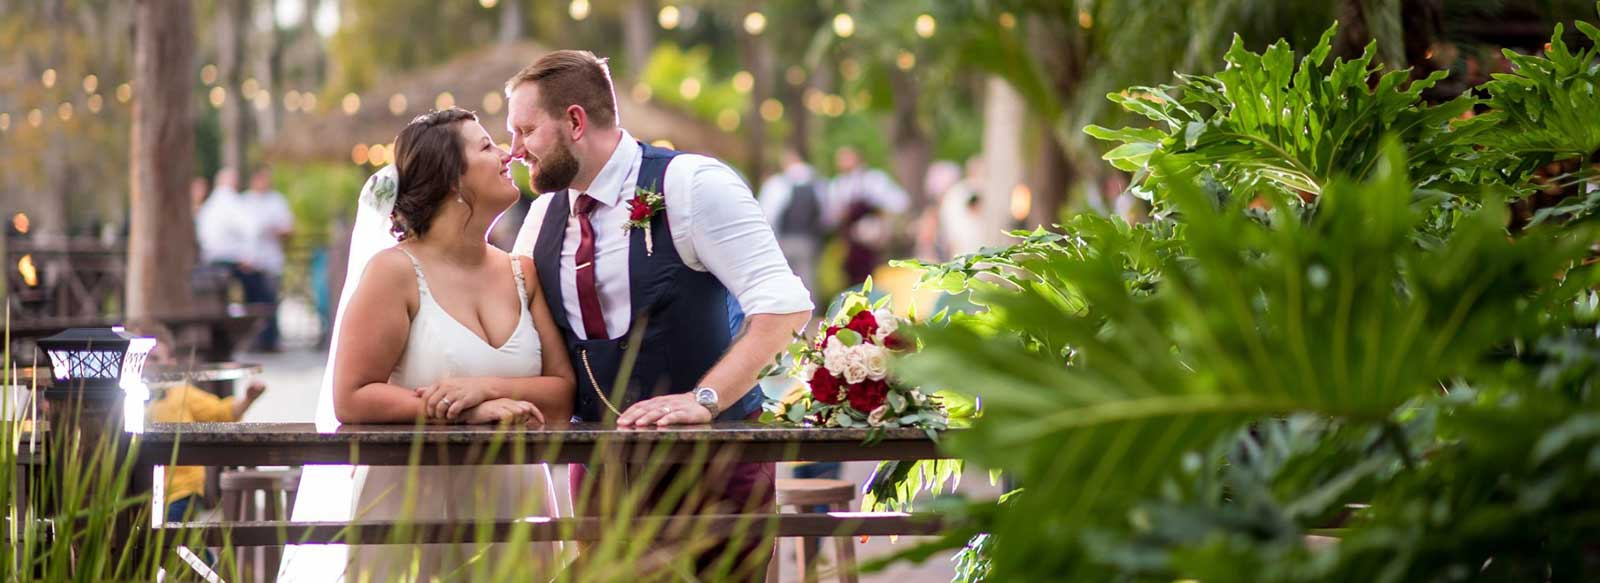 Request Pricing from Paradise Cove, an idyllic Orlando beach wedding venue on the shores of Lake Bryan. A fairy tale wedding to fit your vision & budget. Schedule a tour today. Discover our boho, romantic waterfront wedding venue, minutes from Disney.